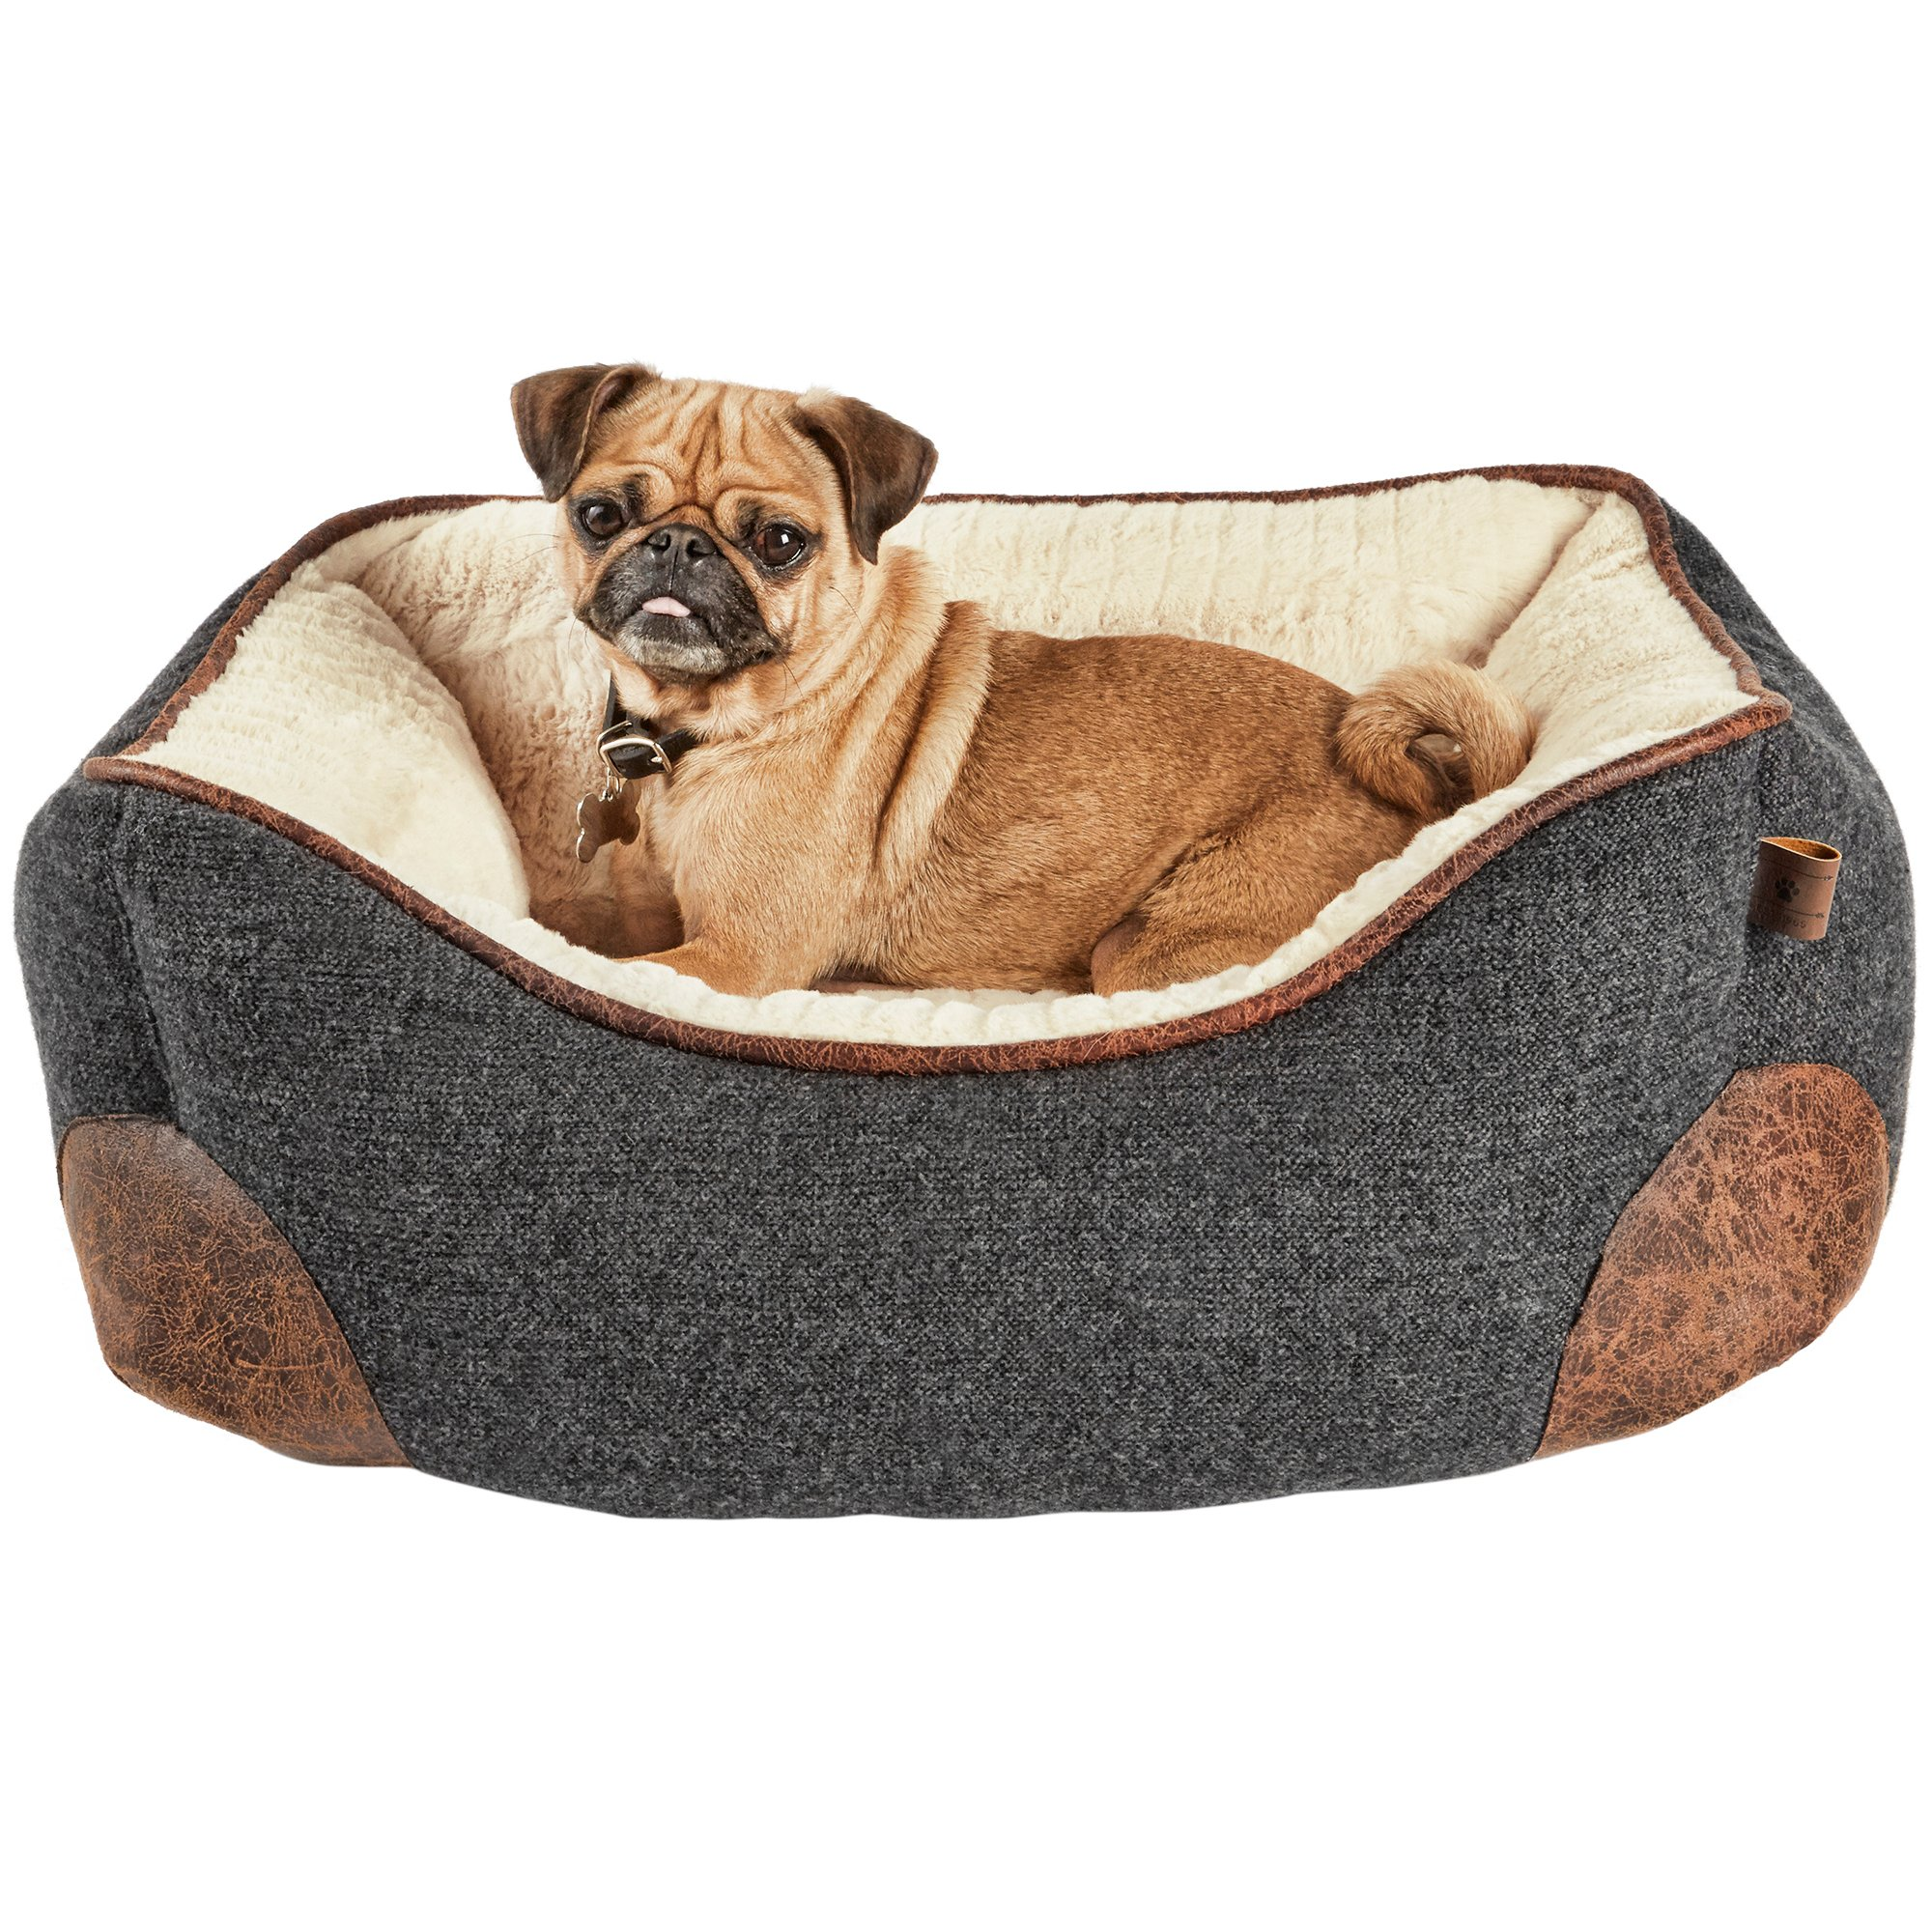 of small dogs bed sale all dog beds sizes image for available on product hot medium products bun